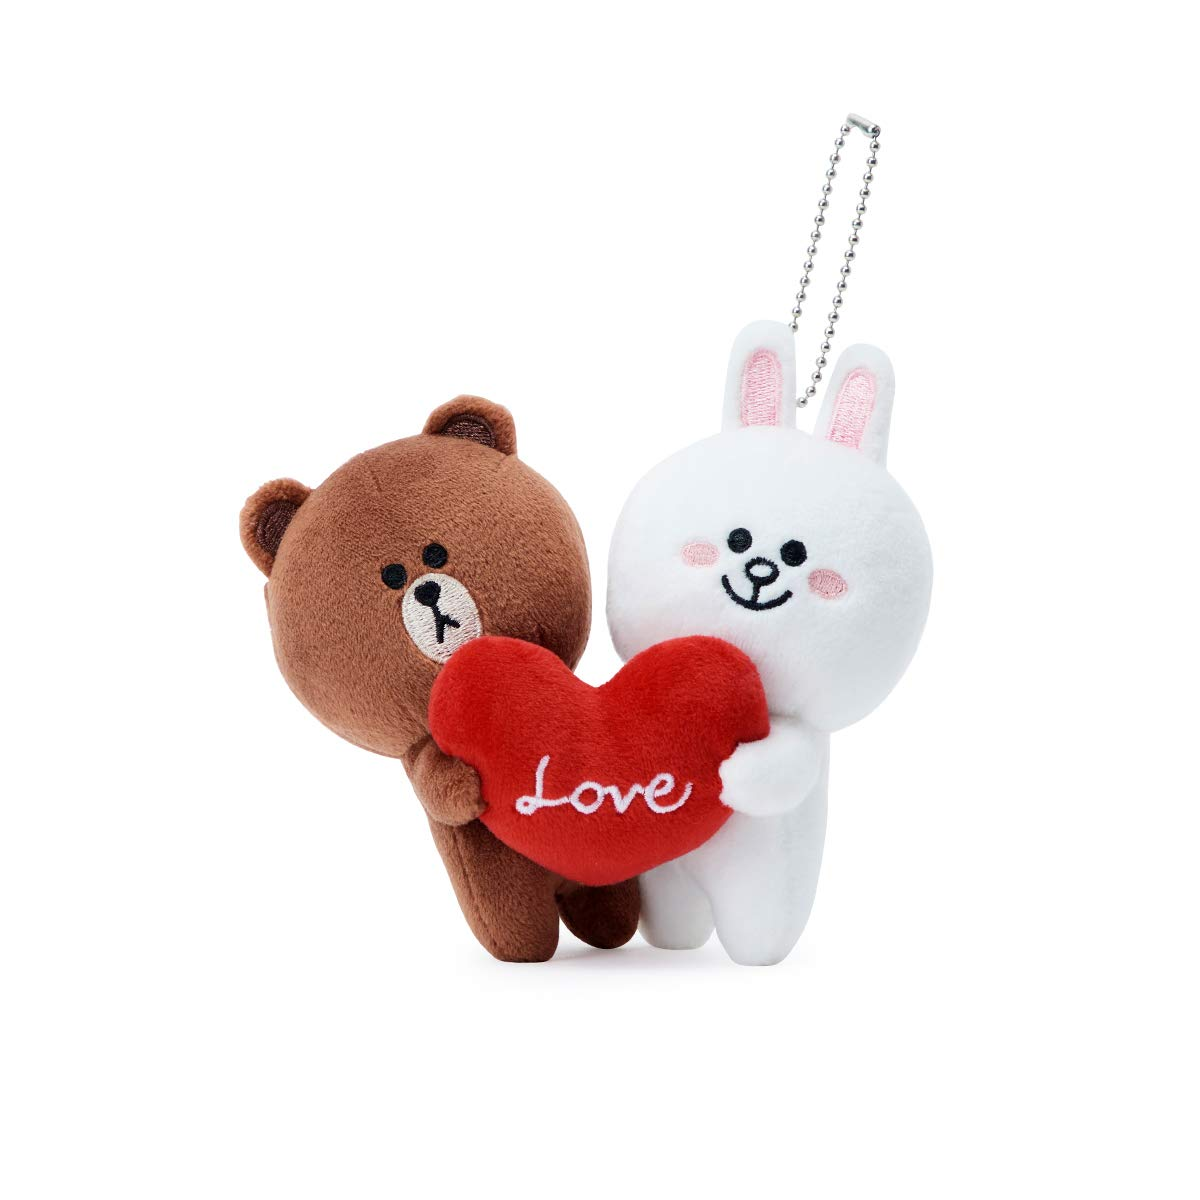 LINE FRIENDS Love Bag Charm - BF Character Keychain Décor 15CM, Brown/White by LINE FRIENDS (Image #1)